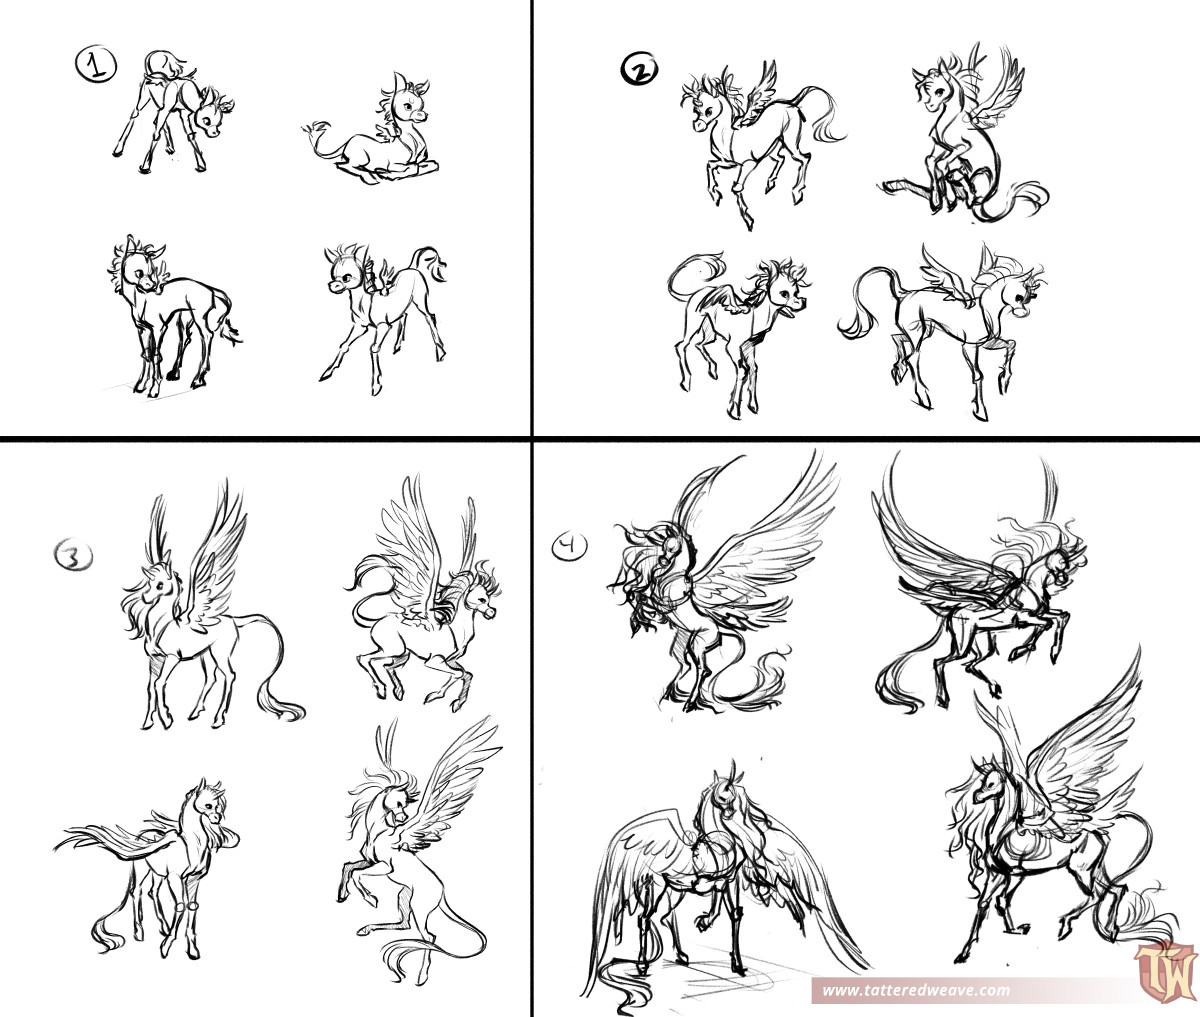 Kith Poses (Concepts)